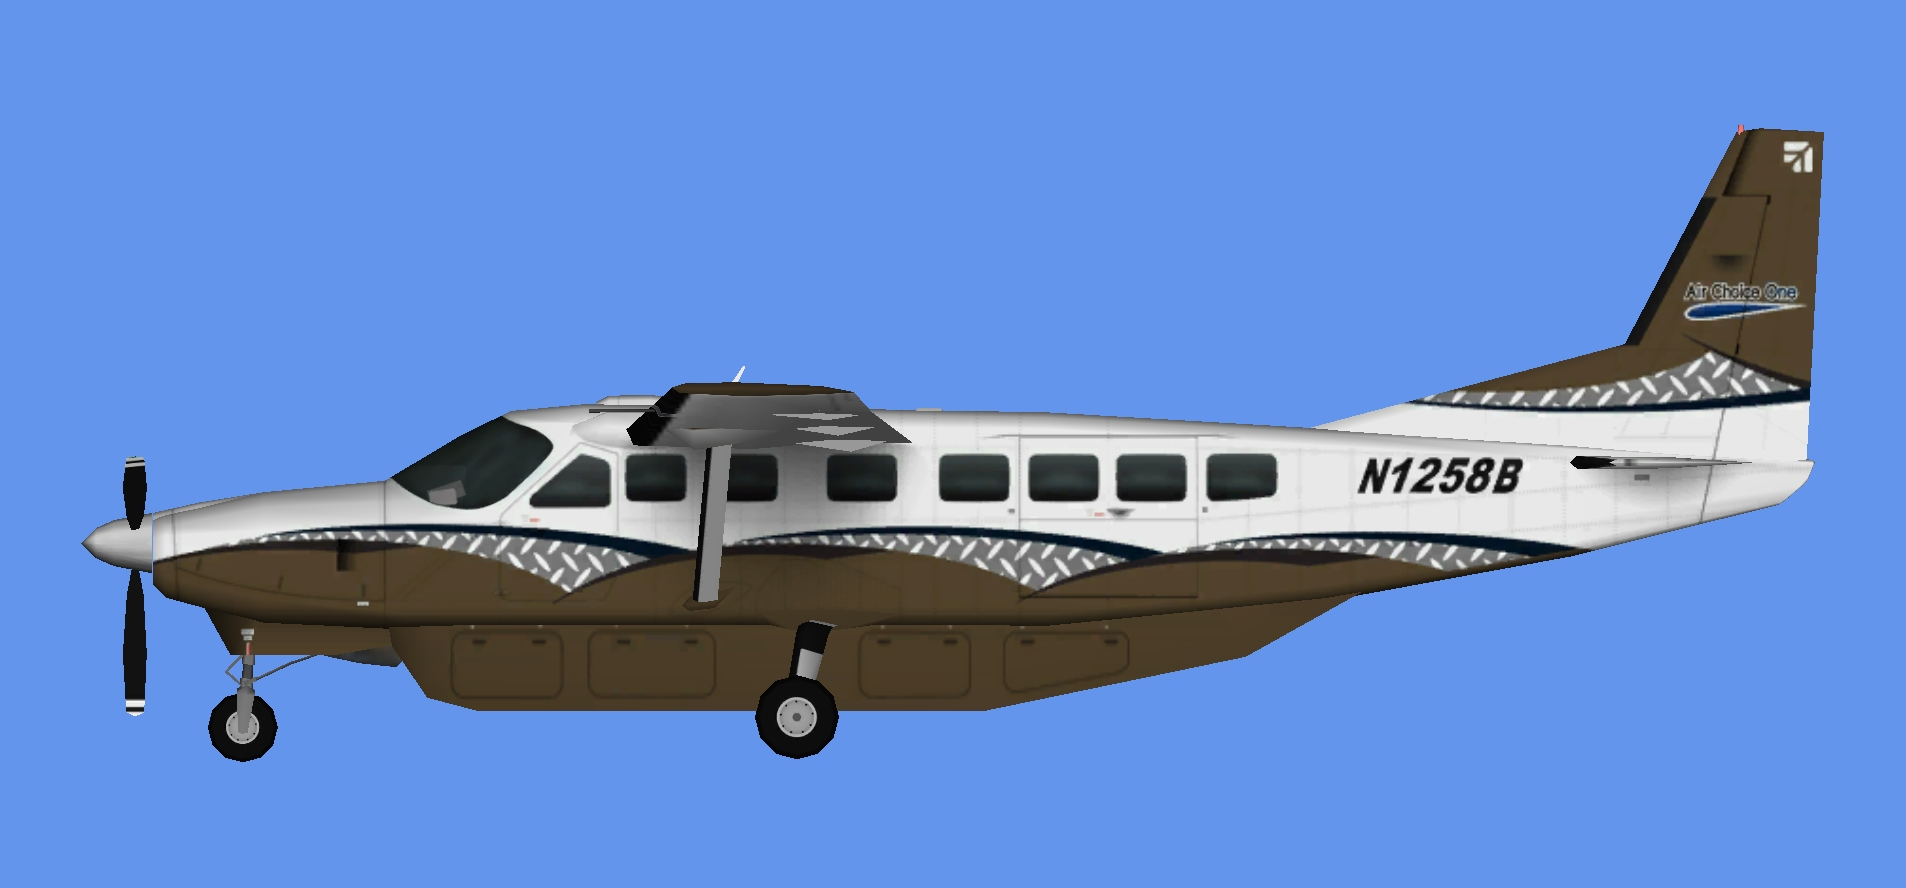 Air Choice One Cessna 208B